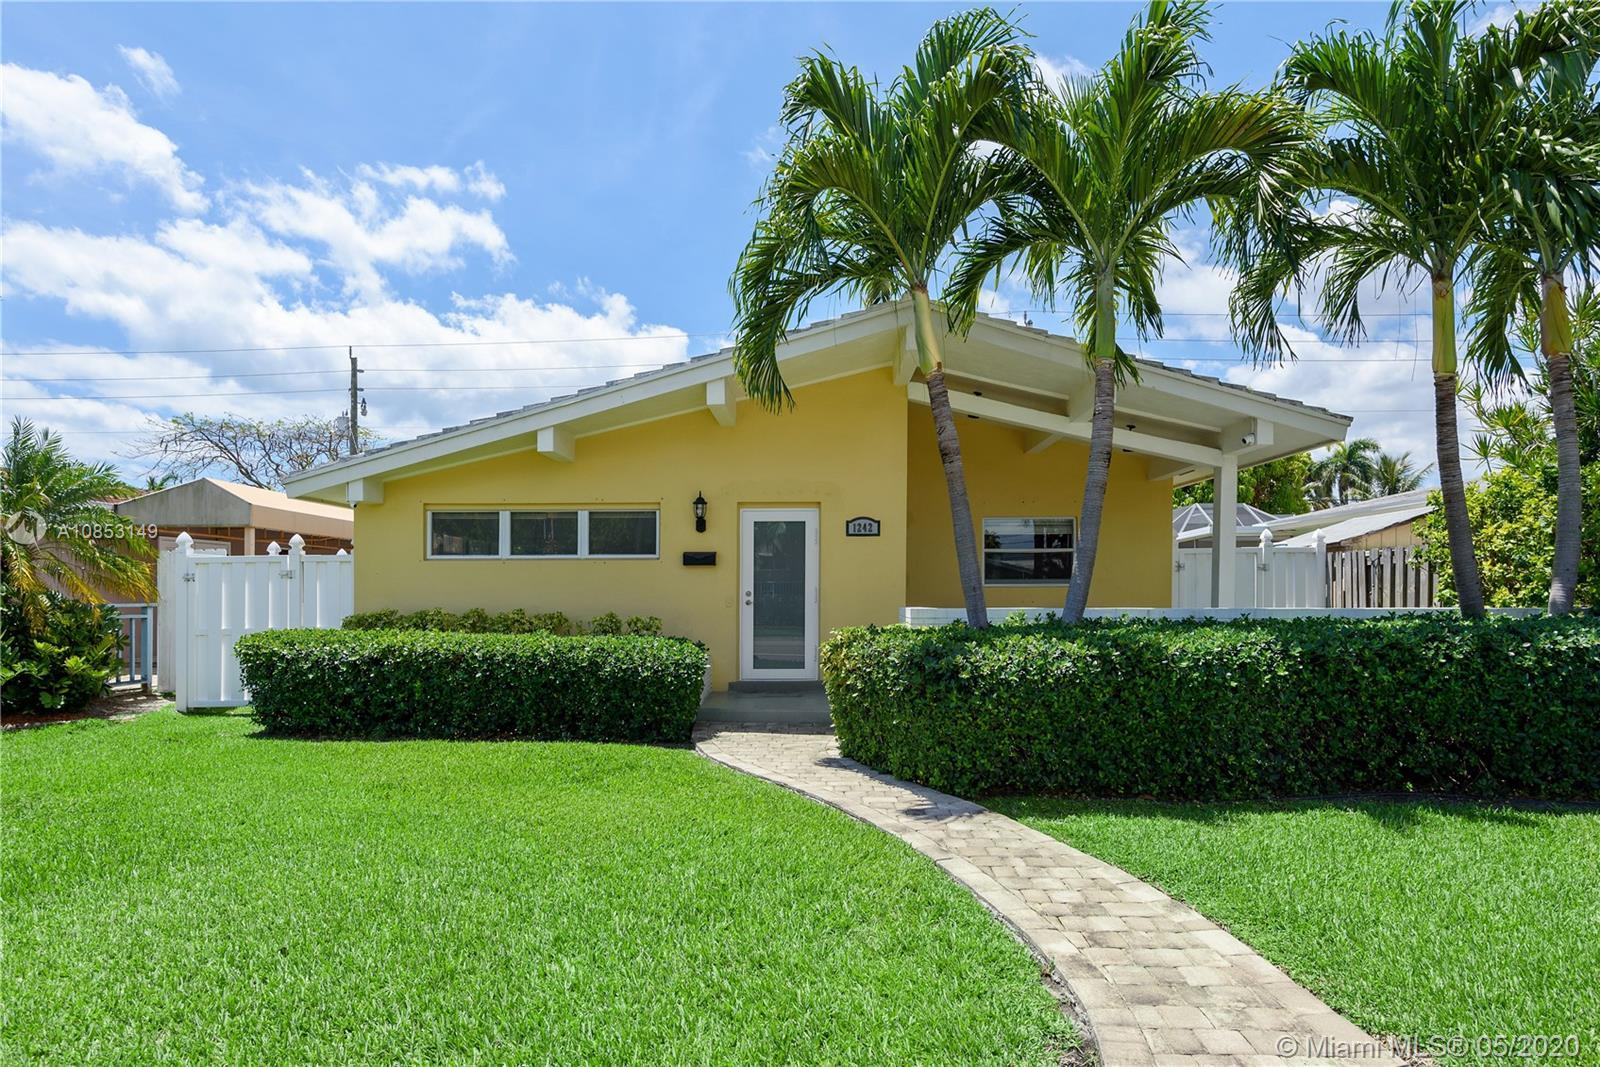 Prime Hollywood Lakes location! This beautiful bright & airy 3/2 is in the heart of East Hollywood.